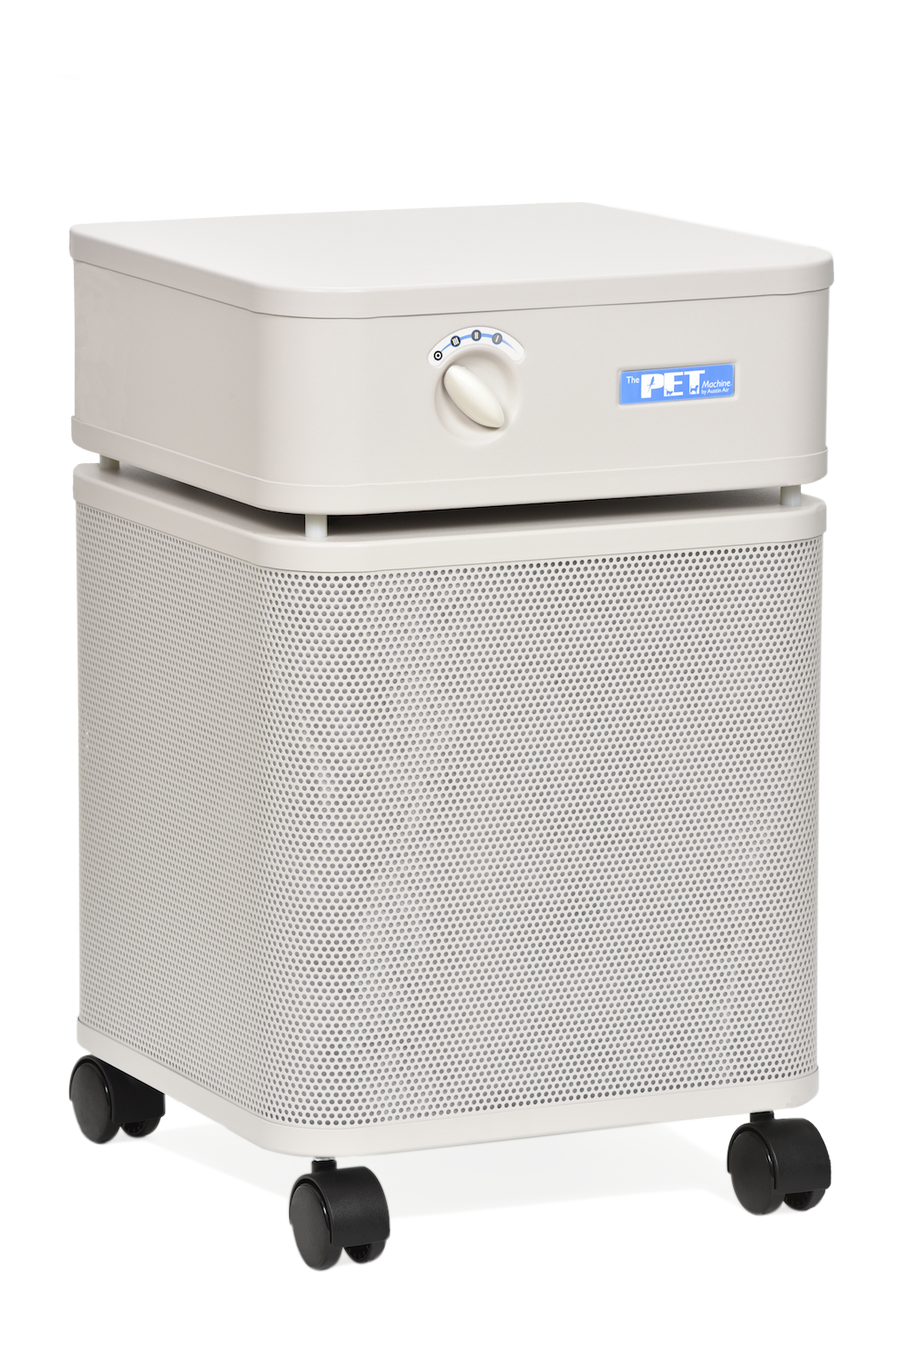 Clearance - PET Machine HM410 Standard HEPA Air Purifier RM1